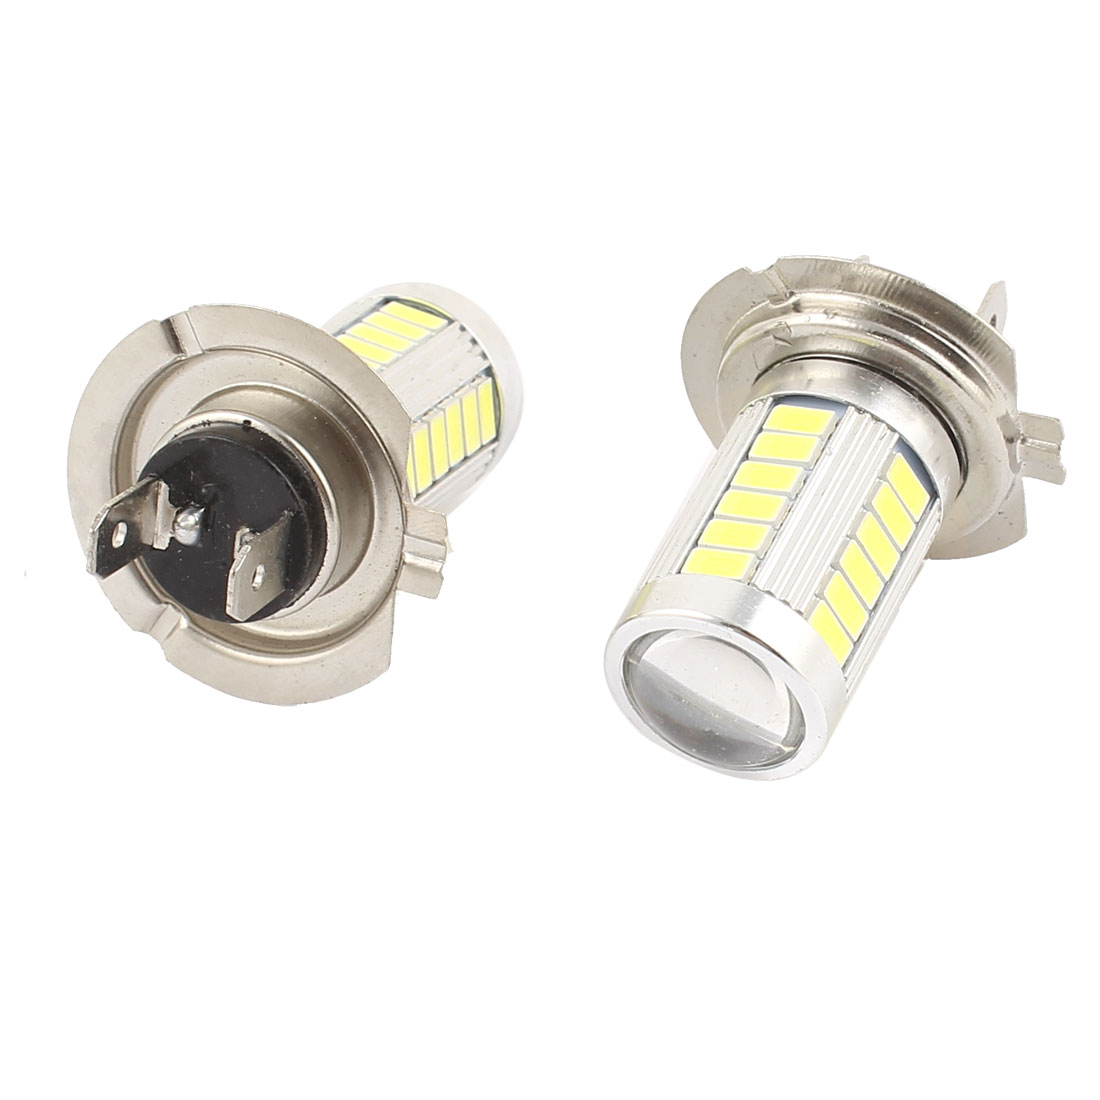 Car White LED 33 SMD 5630 Bulbs H7 Fog Daytime Light Lamp 2 Pcs